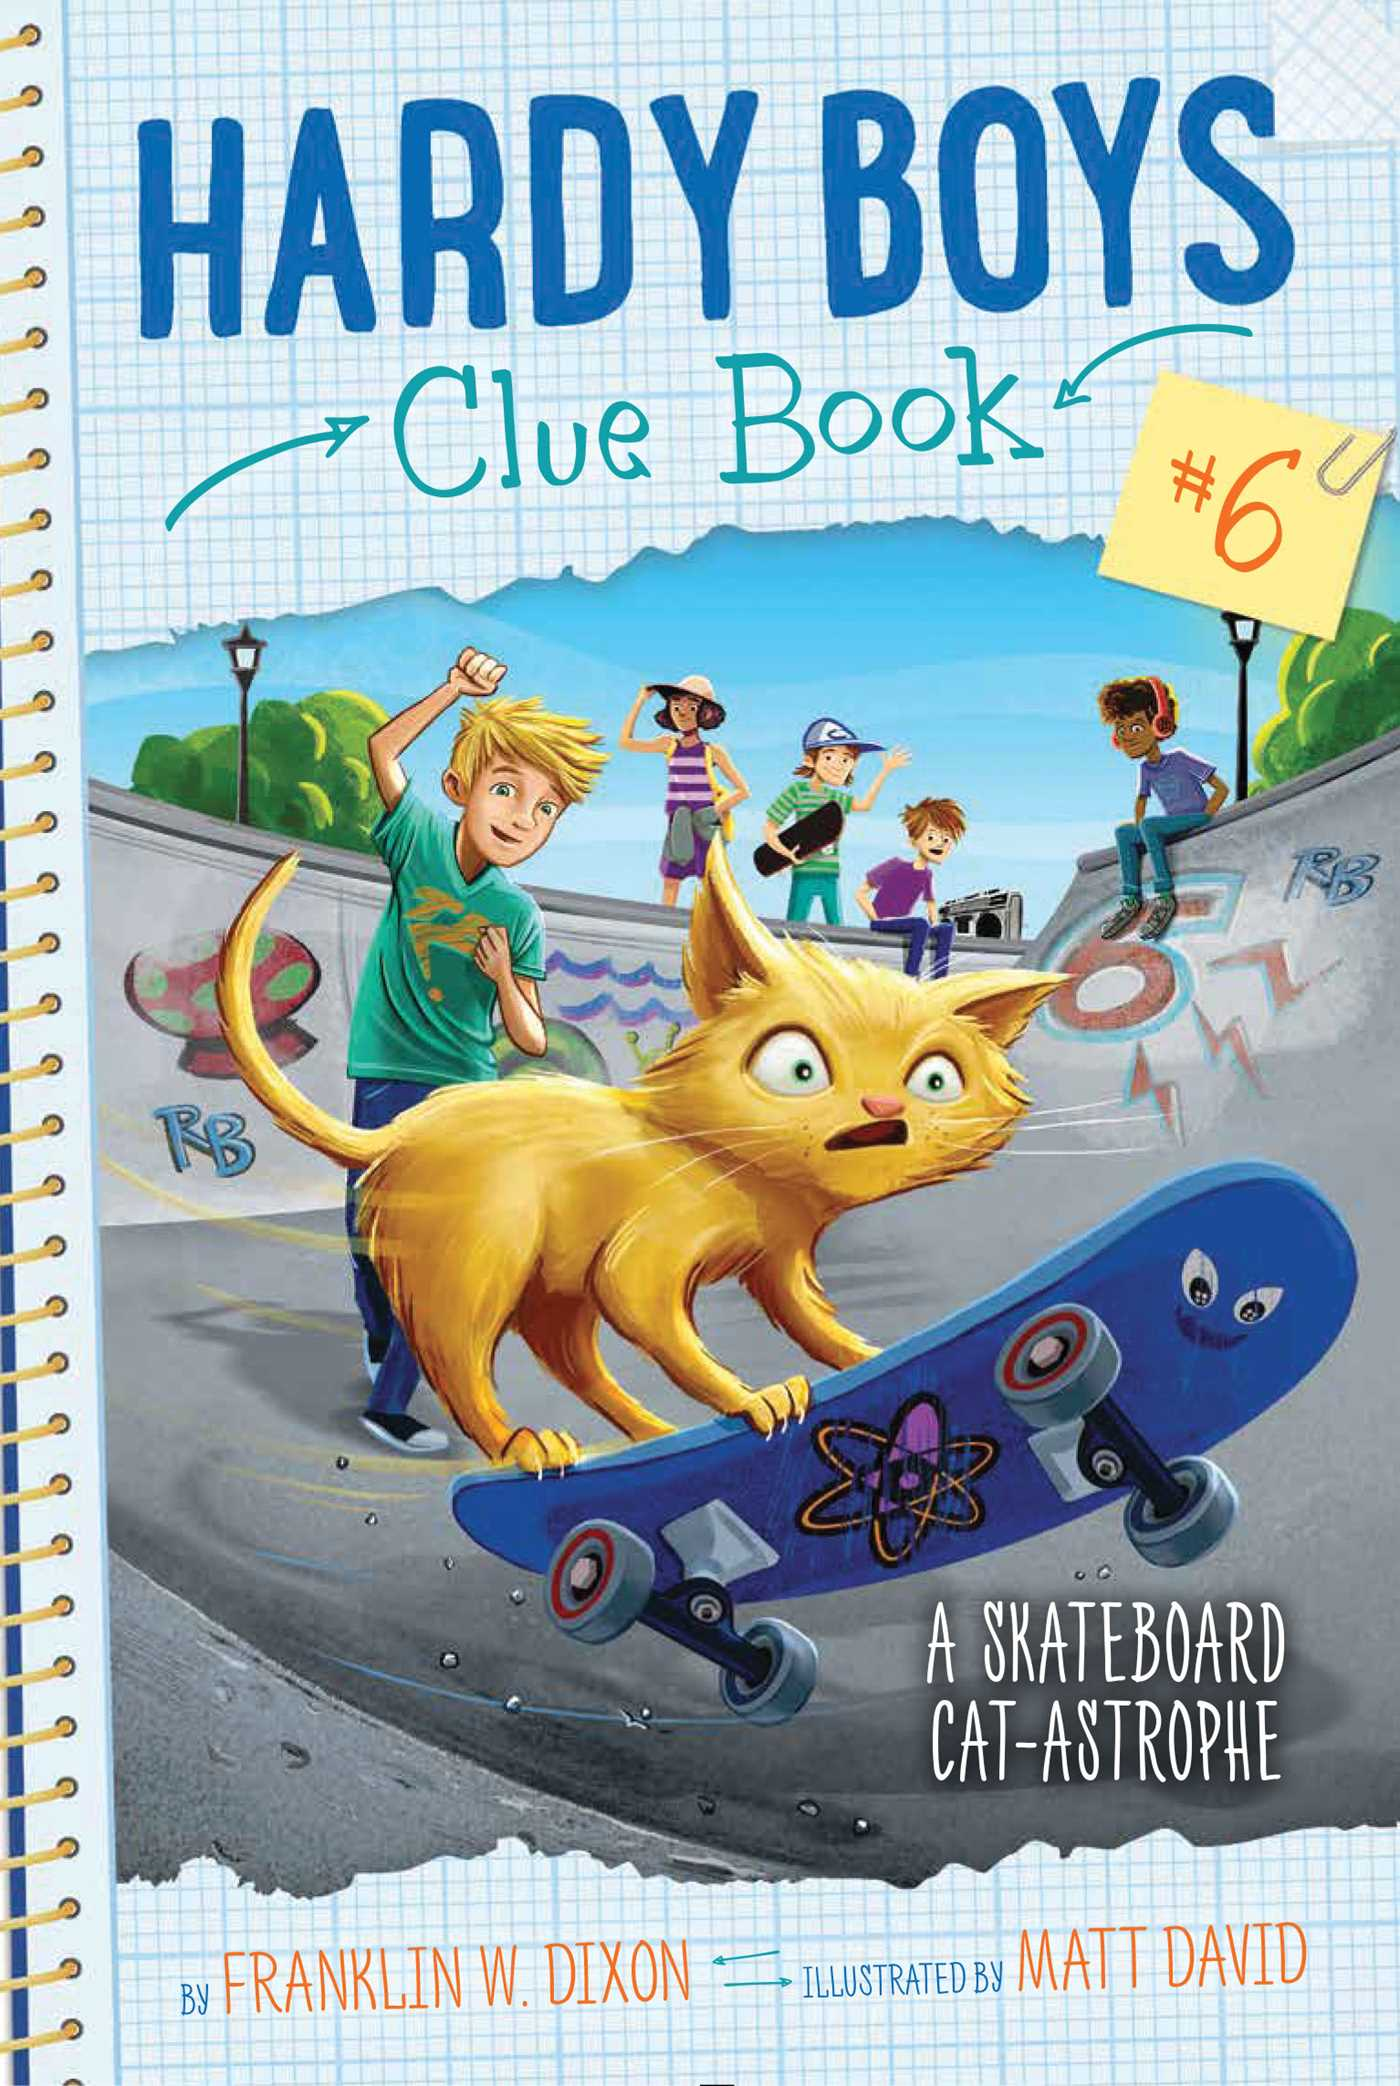 Hardy Boys Clue Book #6 A Skateboard Cat-Astrophe Details and Cover Art